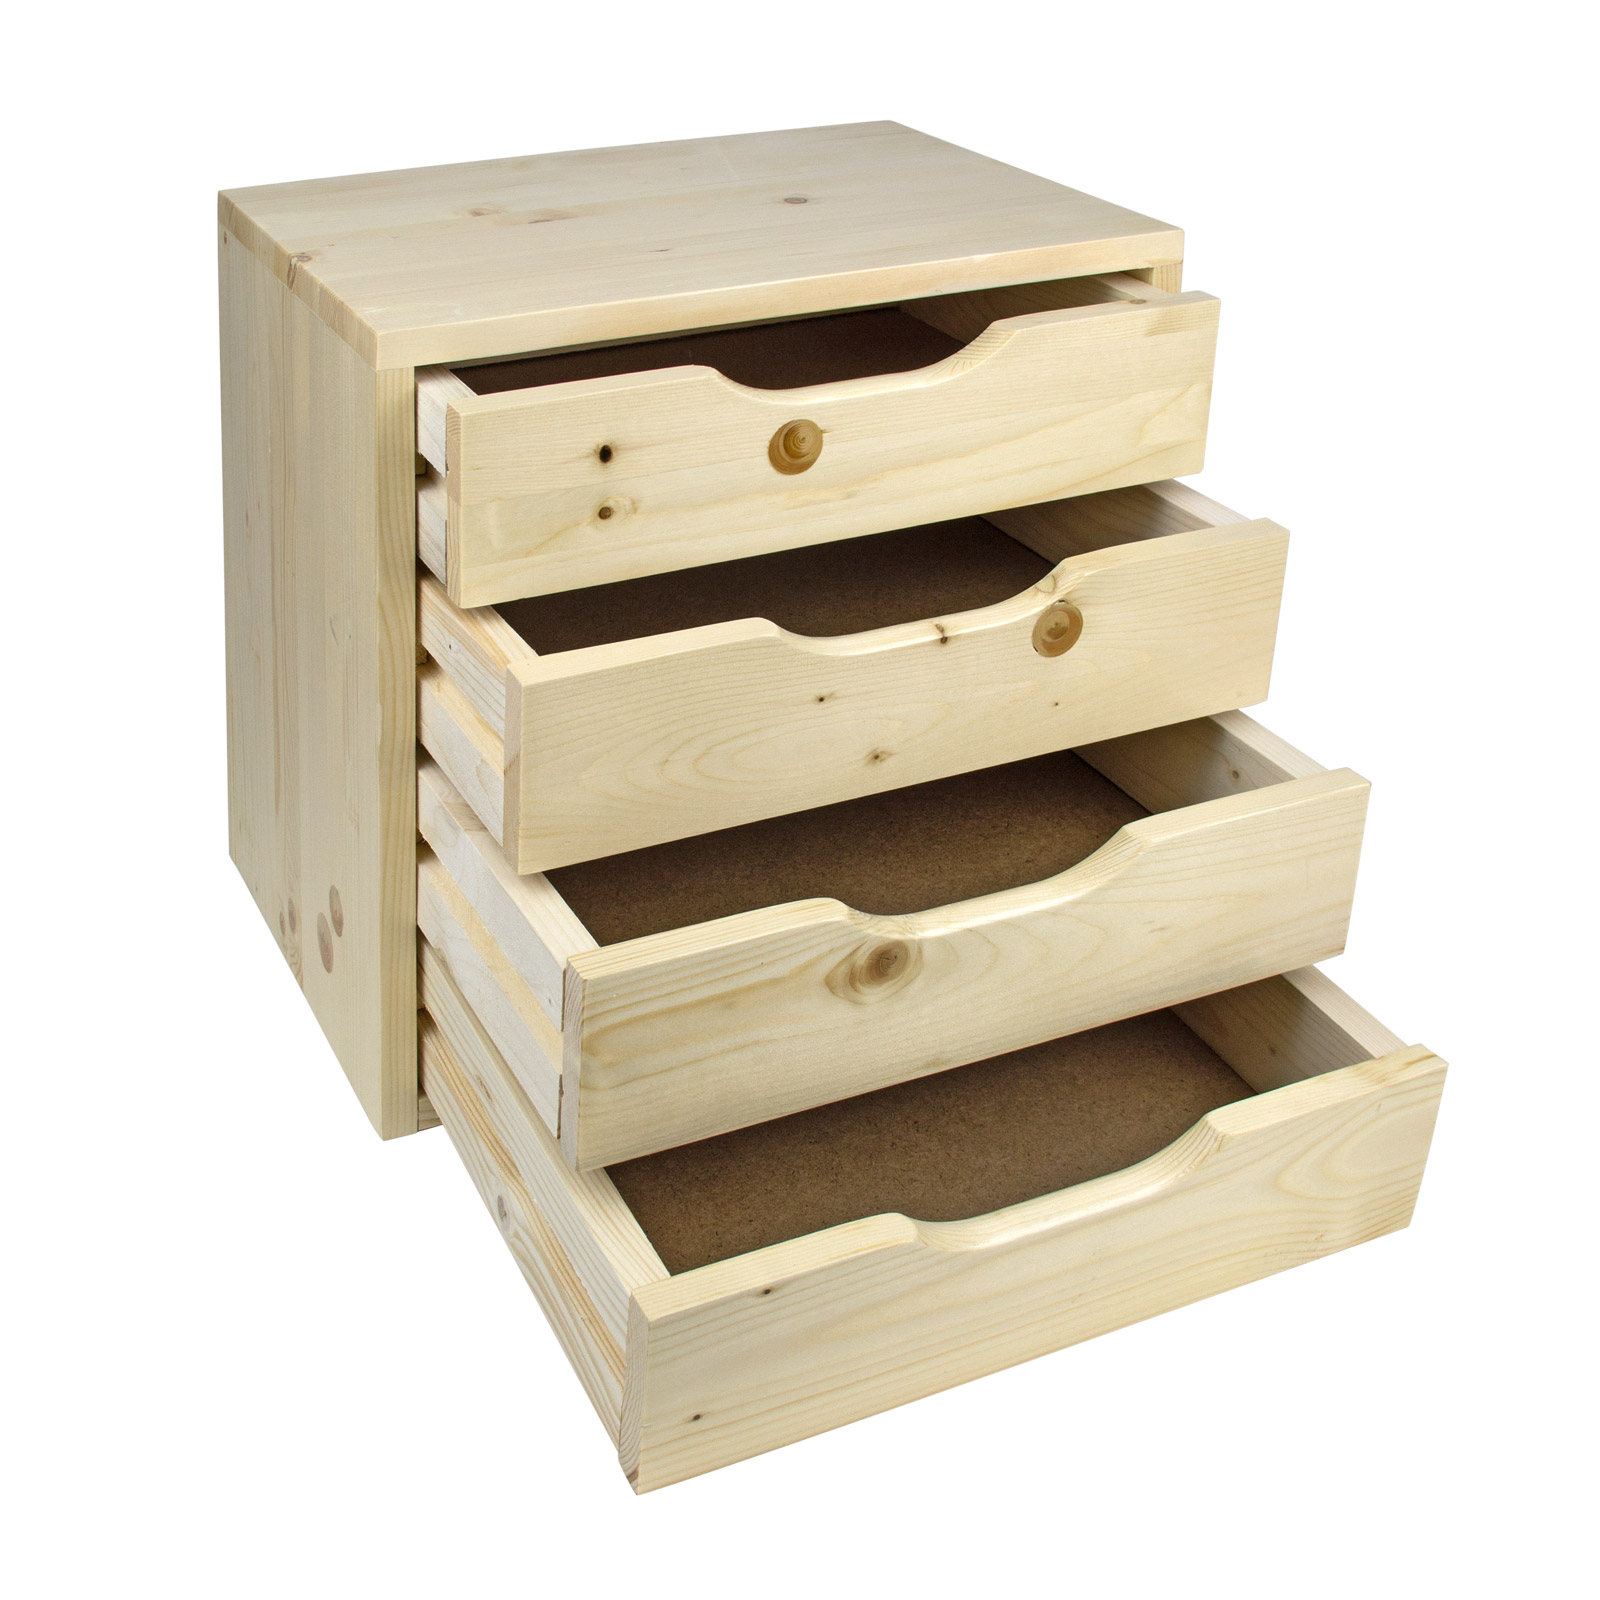 919190 holz schubladenbox schubladen ablagebox holzkiste box sb 4 40x30x40cm ebay. Black Bedroom Furniture Sets. Home Design Ideas